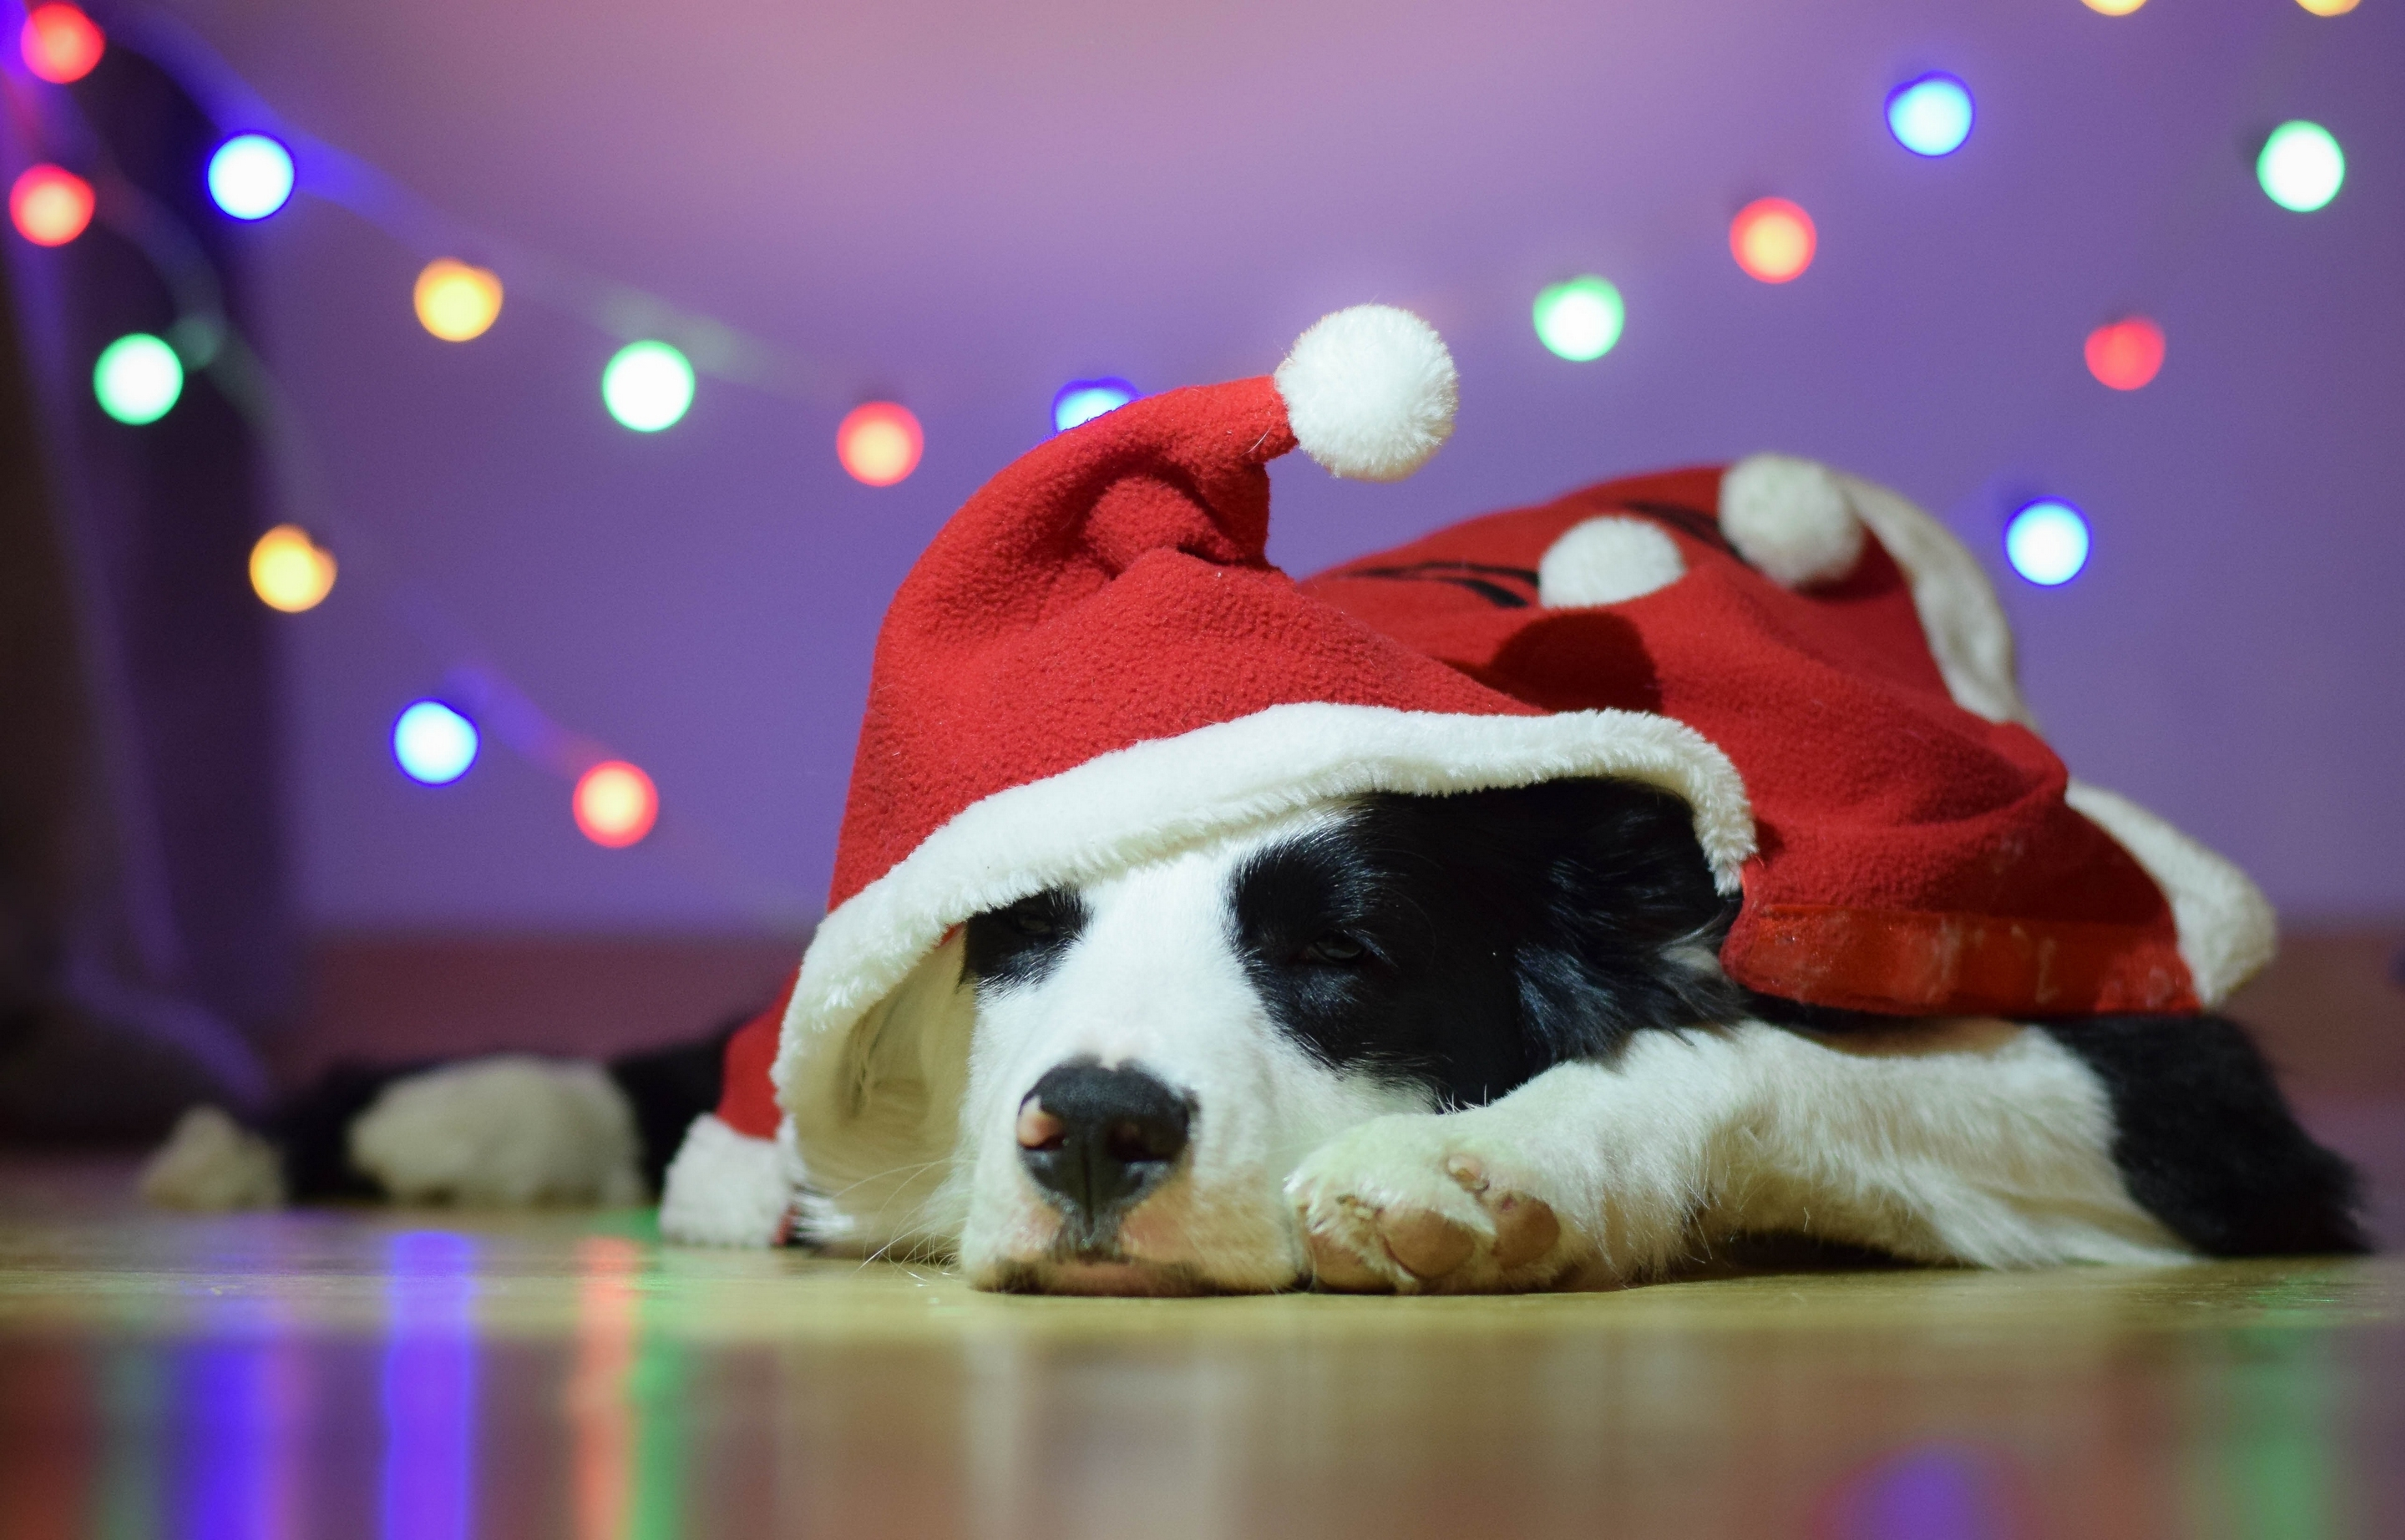 Dogs_Christmas_Border_459360